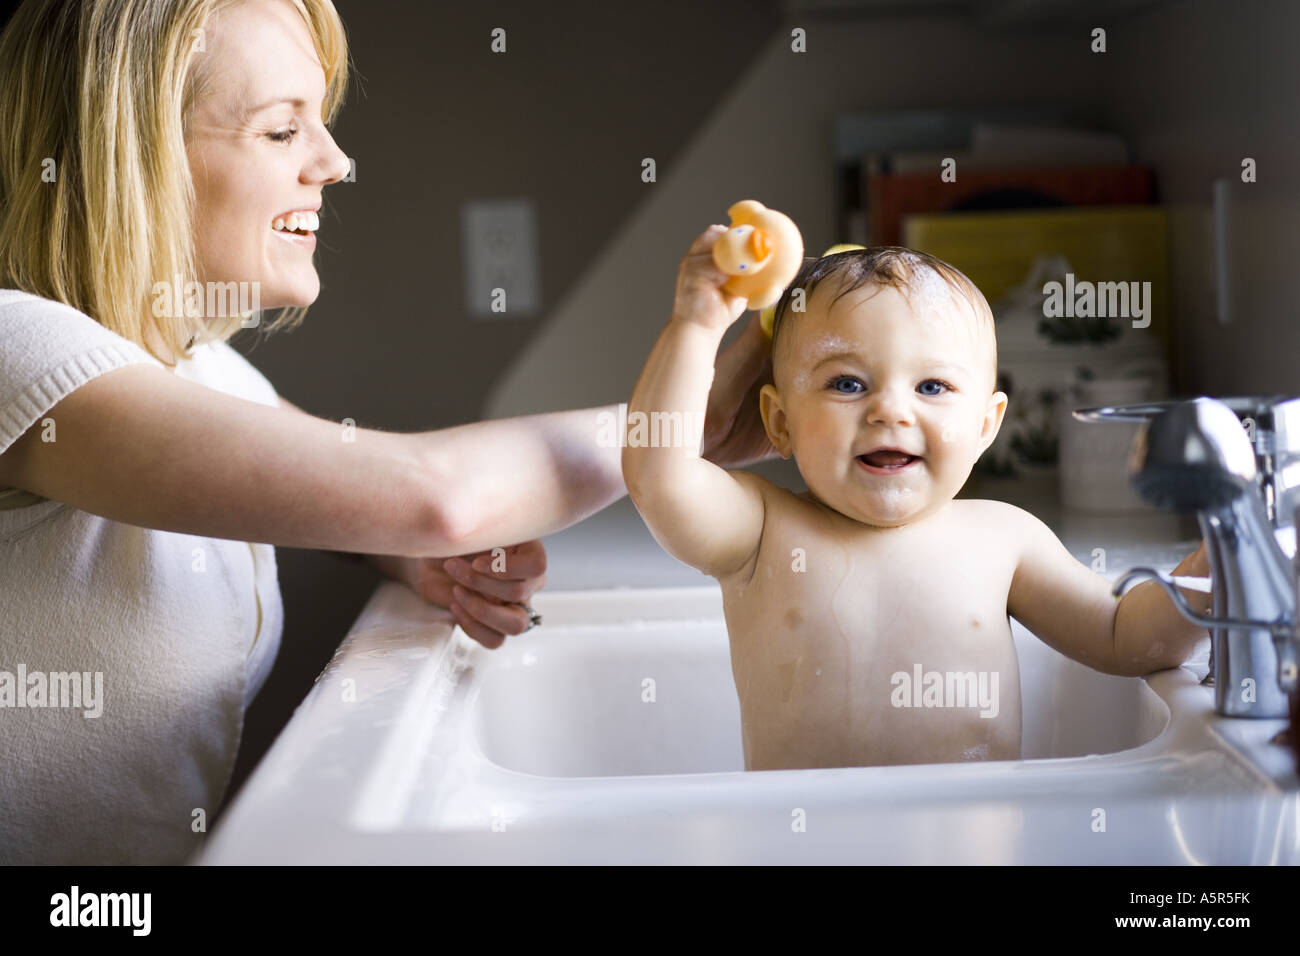 Woman bathing baby in sink Stock Photo, Royalty Free Image ...